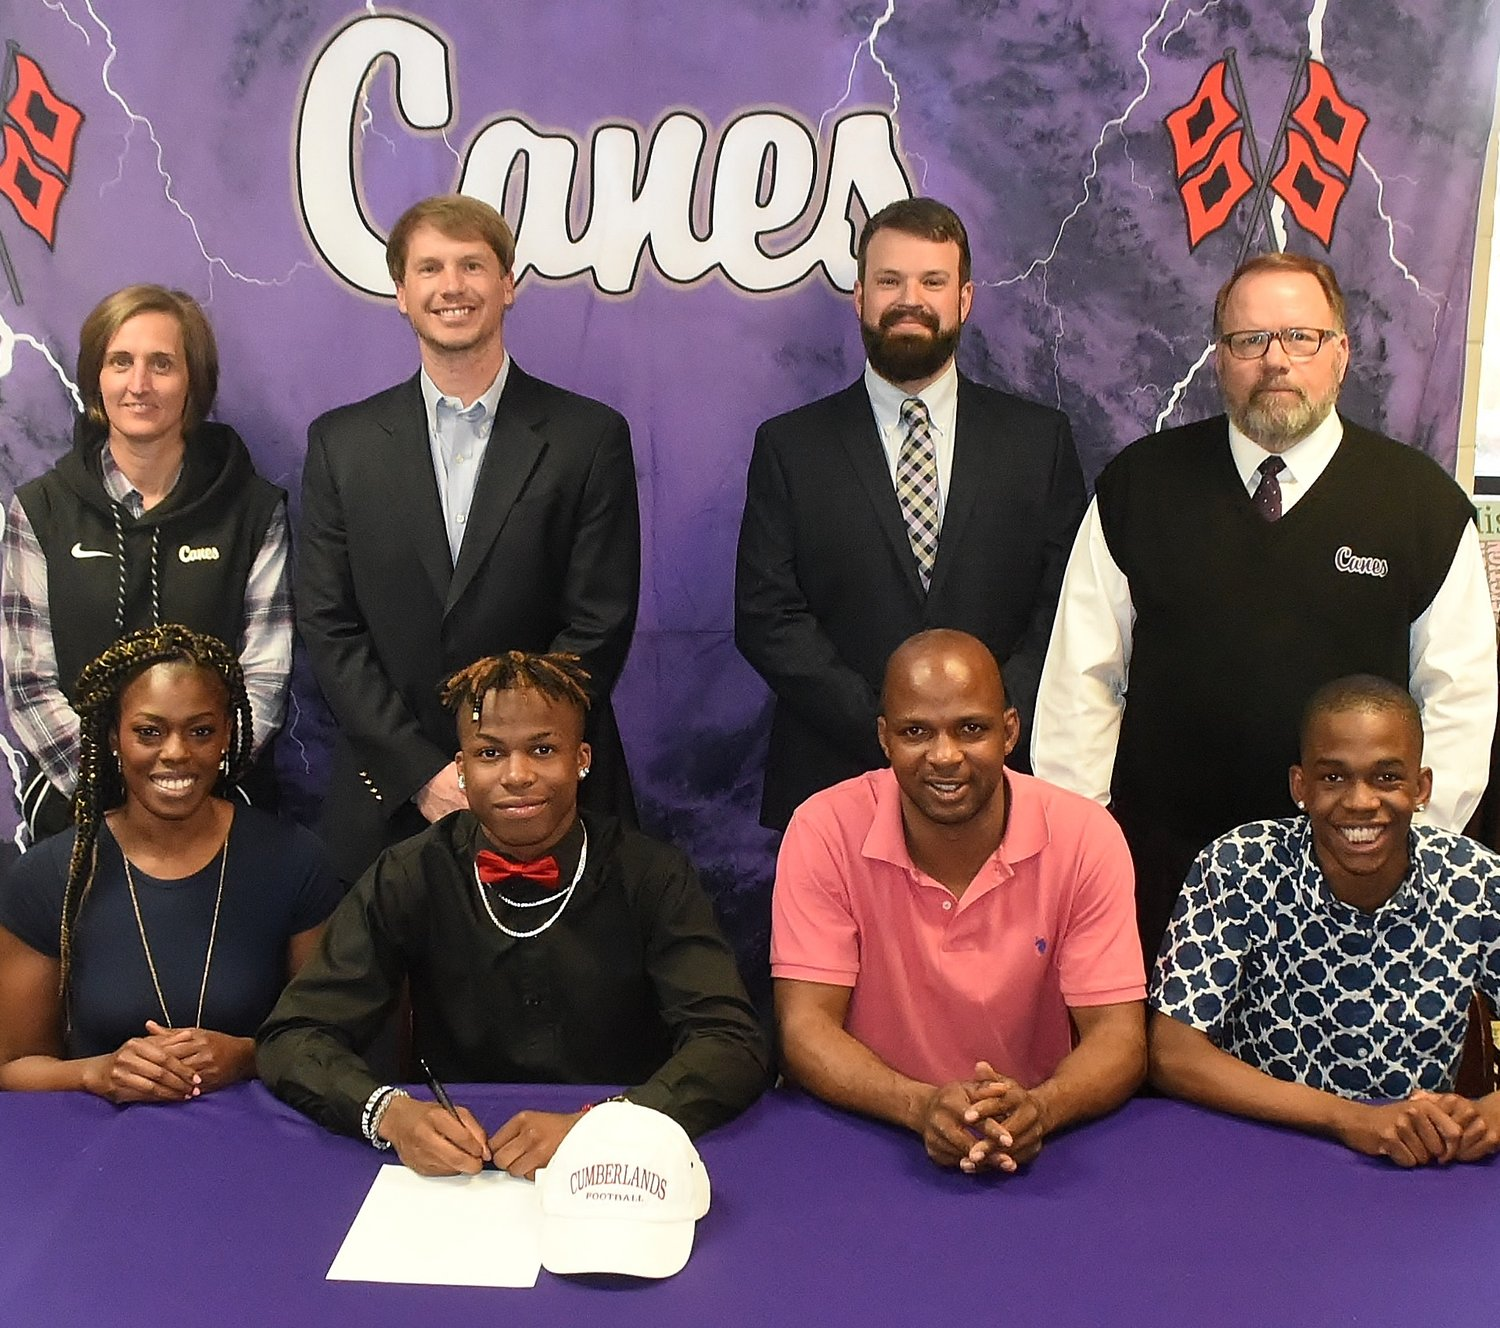 Cartersville High School senior Dadrian Dennis signed to play football with the University of the Cumberlands in Williamsburg, Kentucky. On hand for the signing were, from left, front row, Jessica Dennis, mother; Jermond Evans, stepfather; Donavan Dennis, brother; back row: Shelley Tierce, CHS principal; Conor Foster, CHS head football coach; Dusty Phillips, CHS assistant football coach; and Darrell Demastus, CHS athletic director.